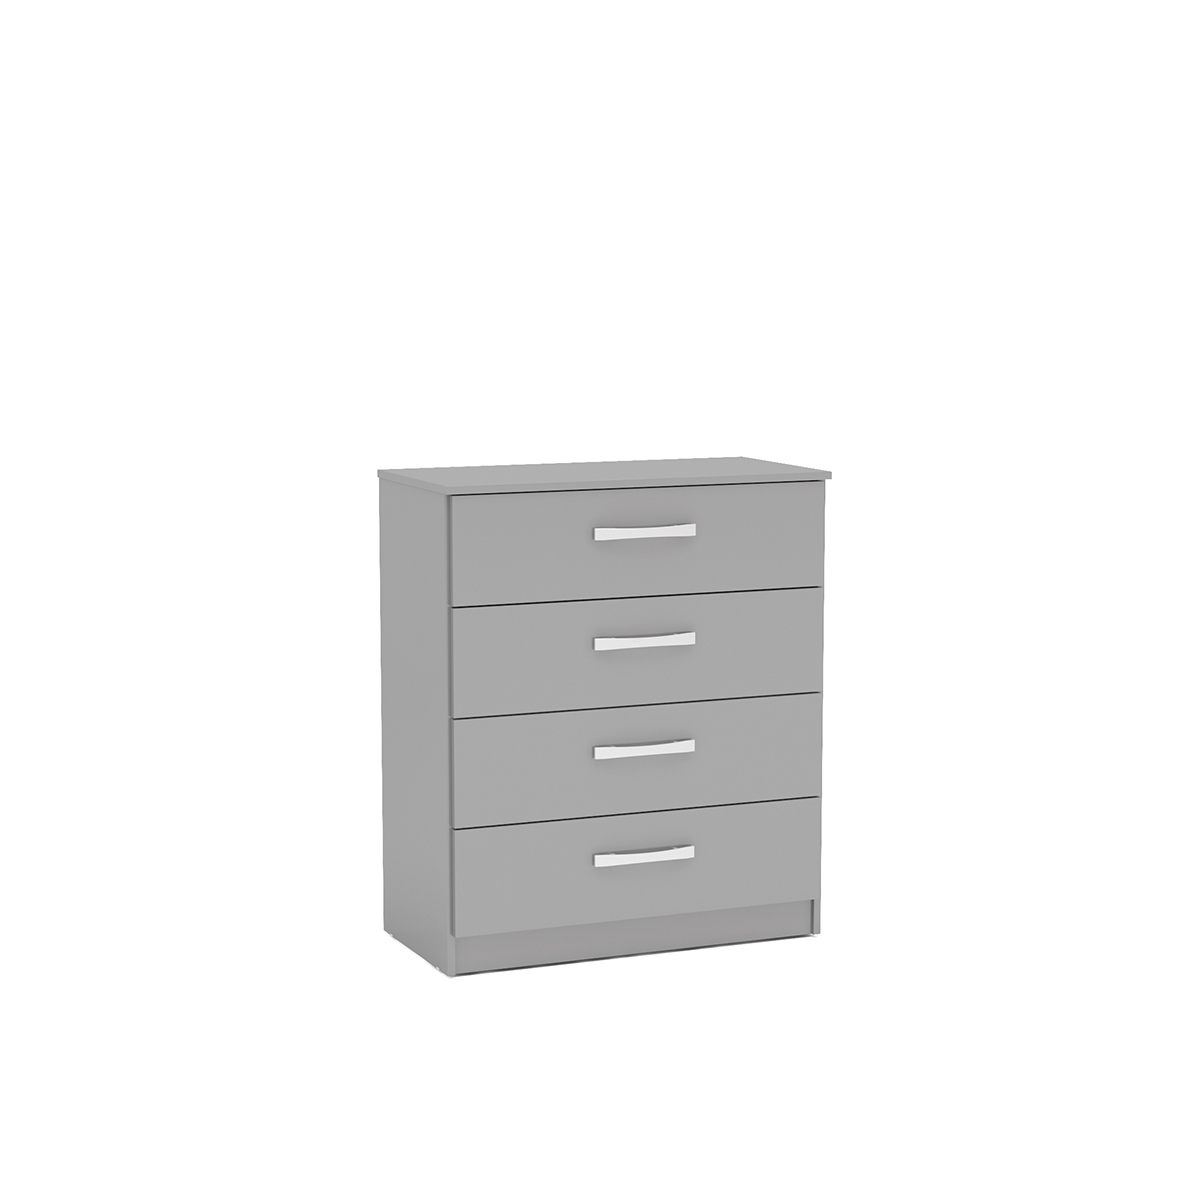 Lynx Grey High Gloss 4 Drawer Chest £124